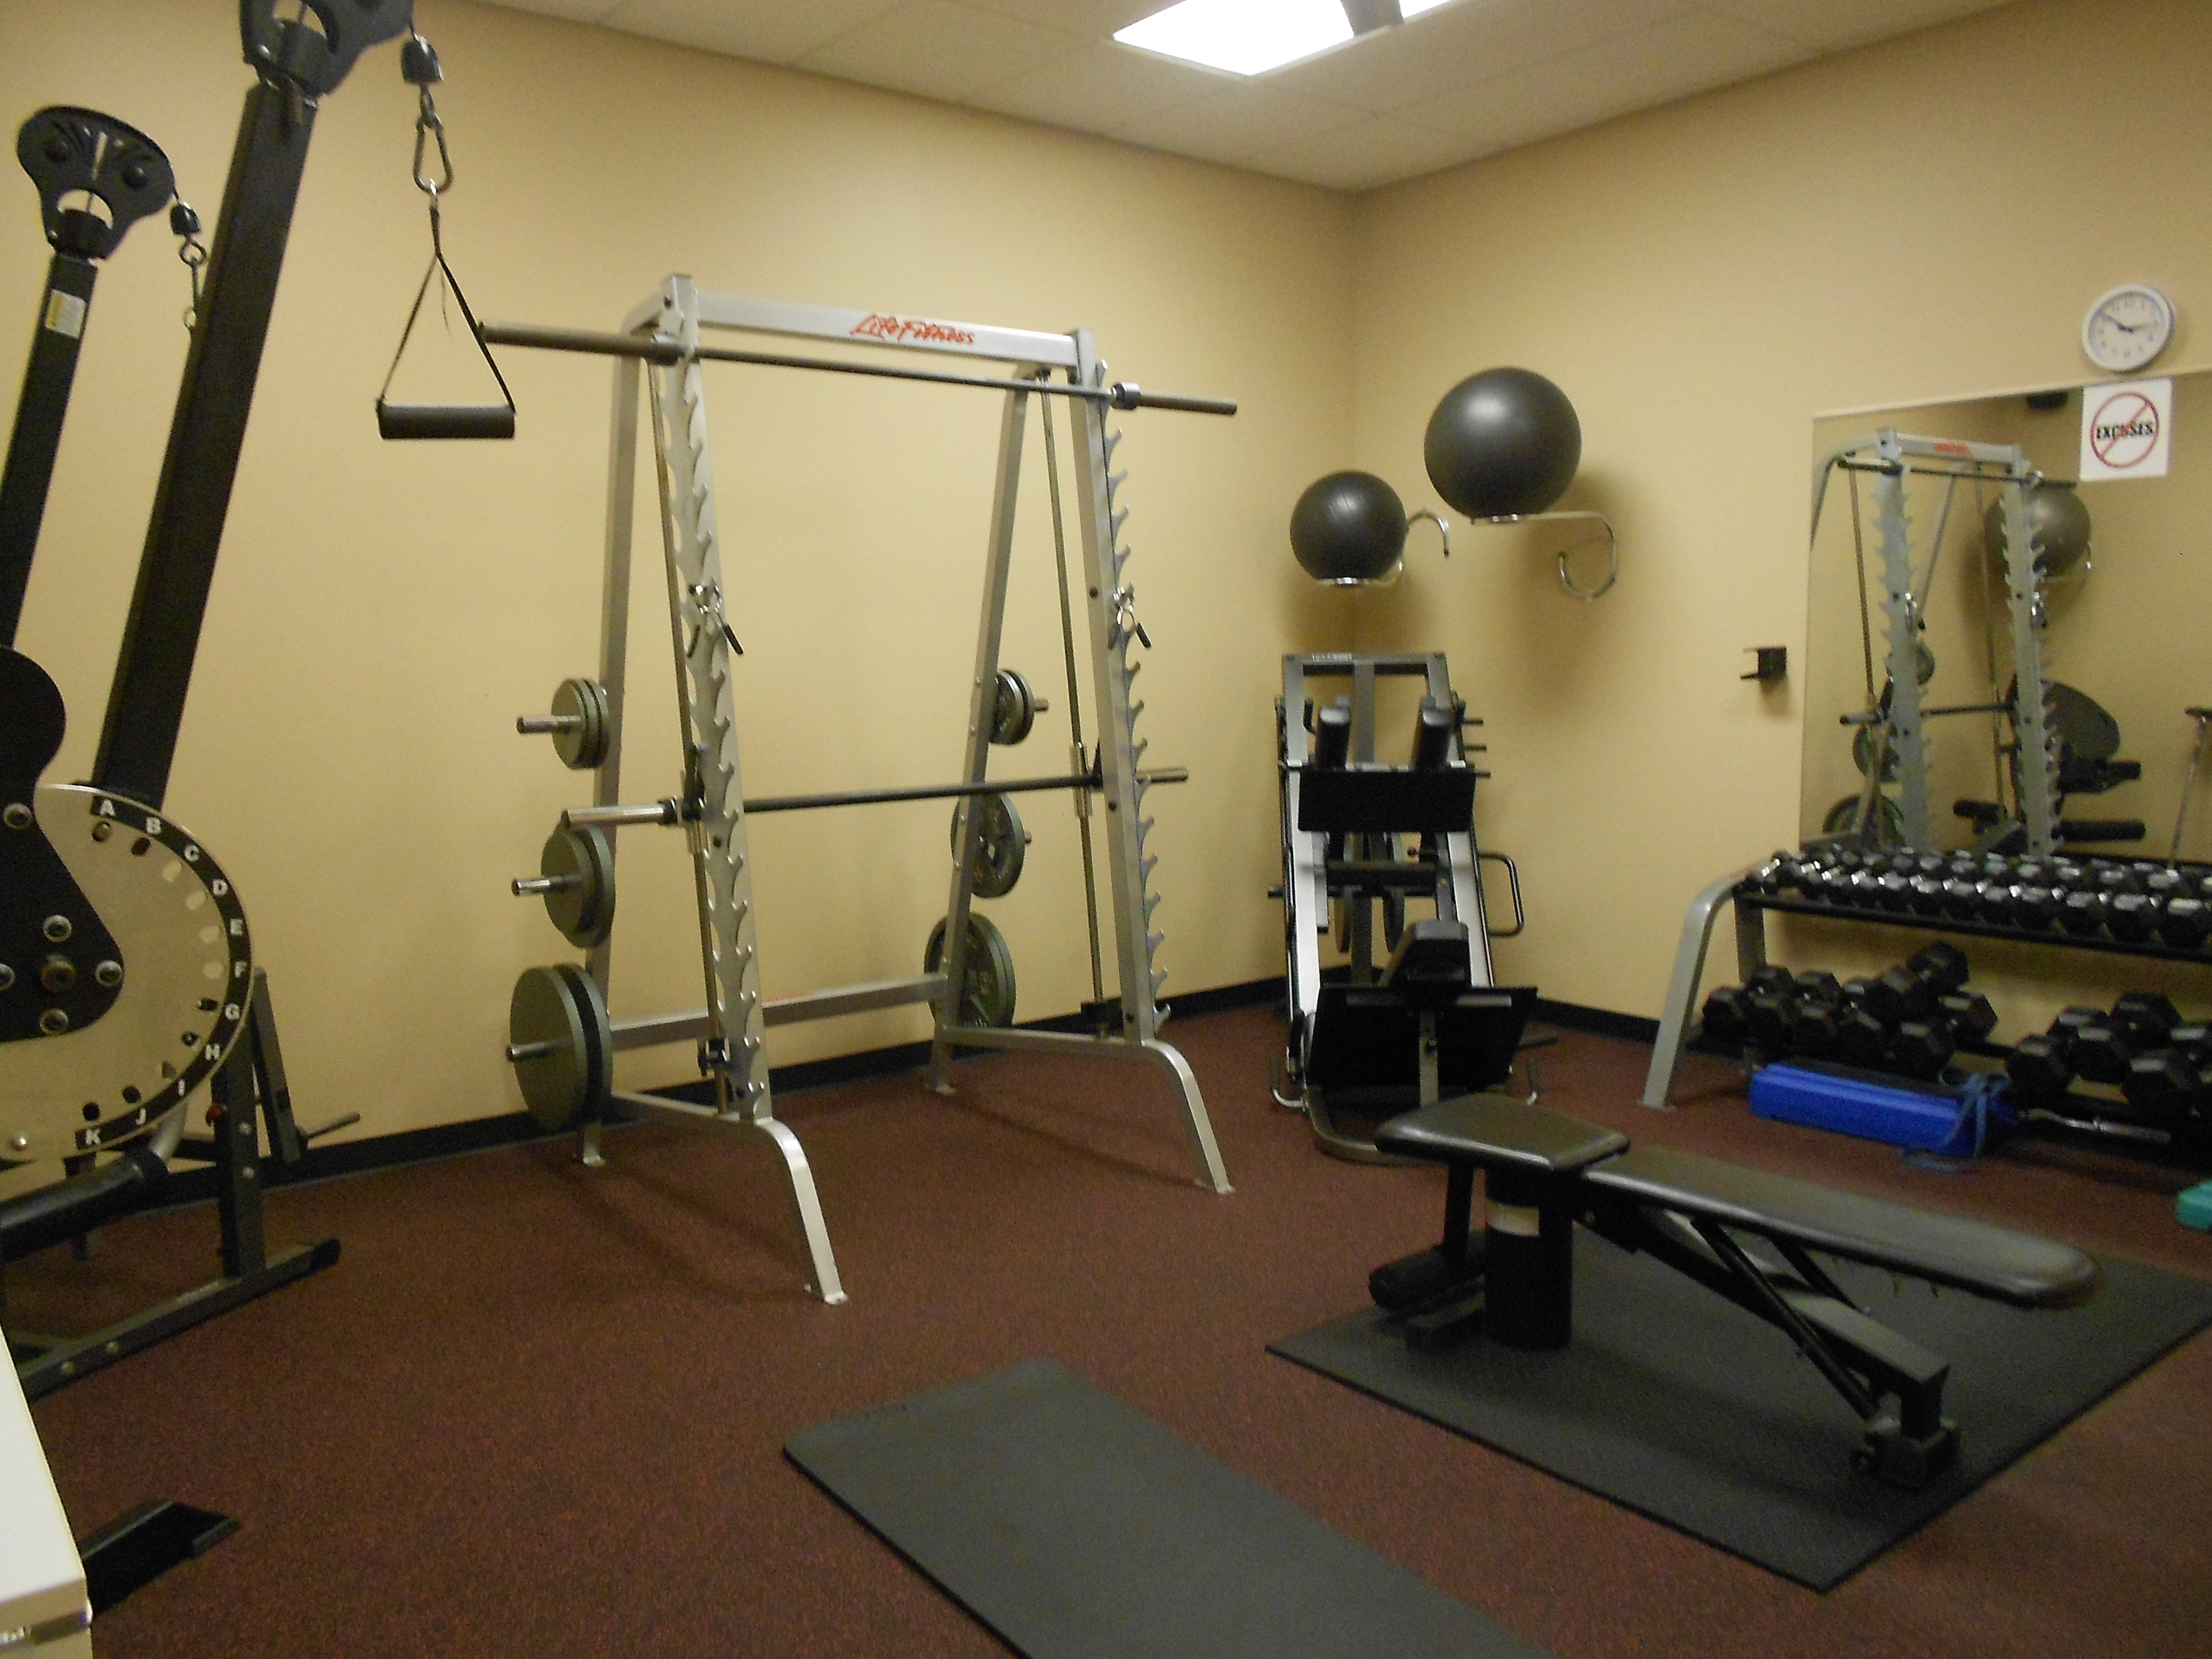 Personal Level Fitness image 3